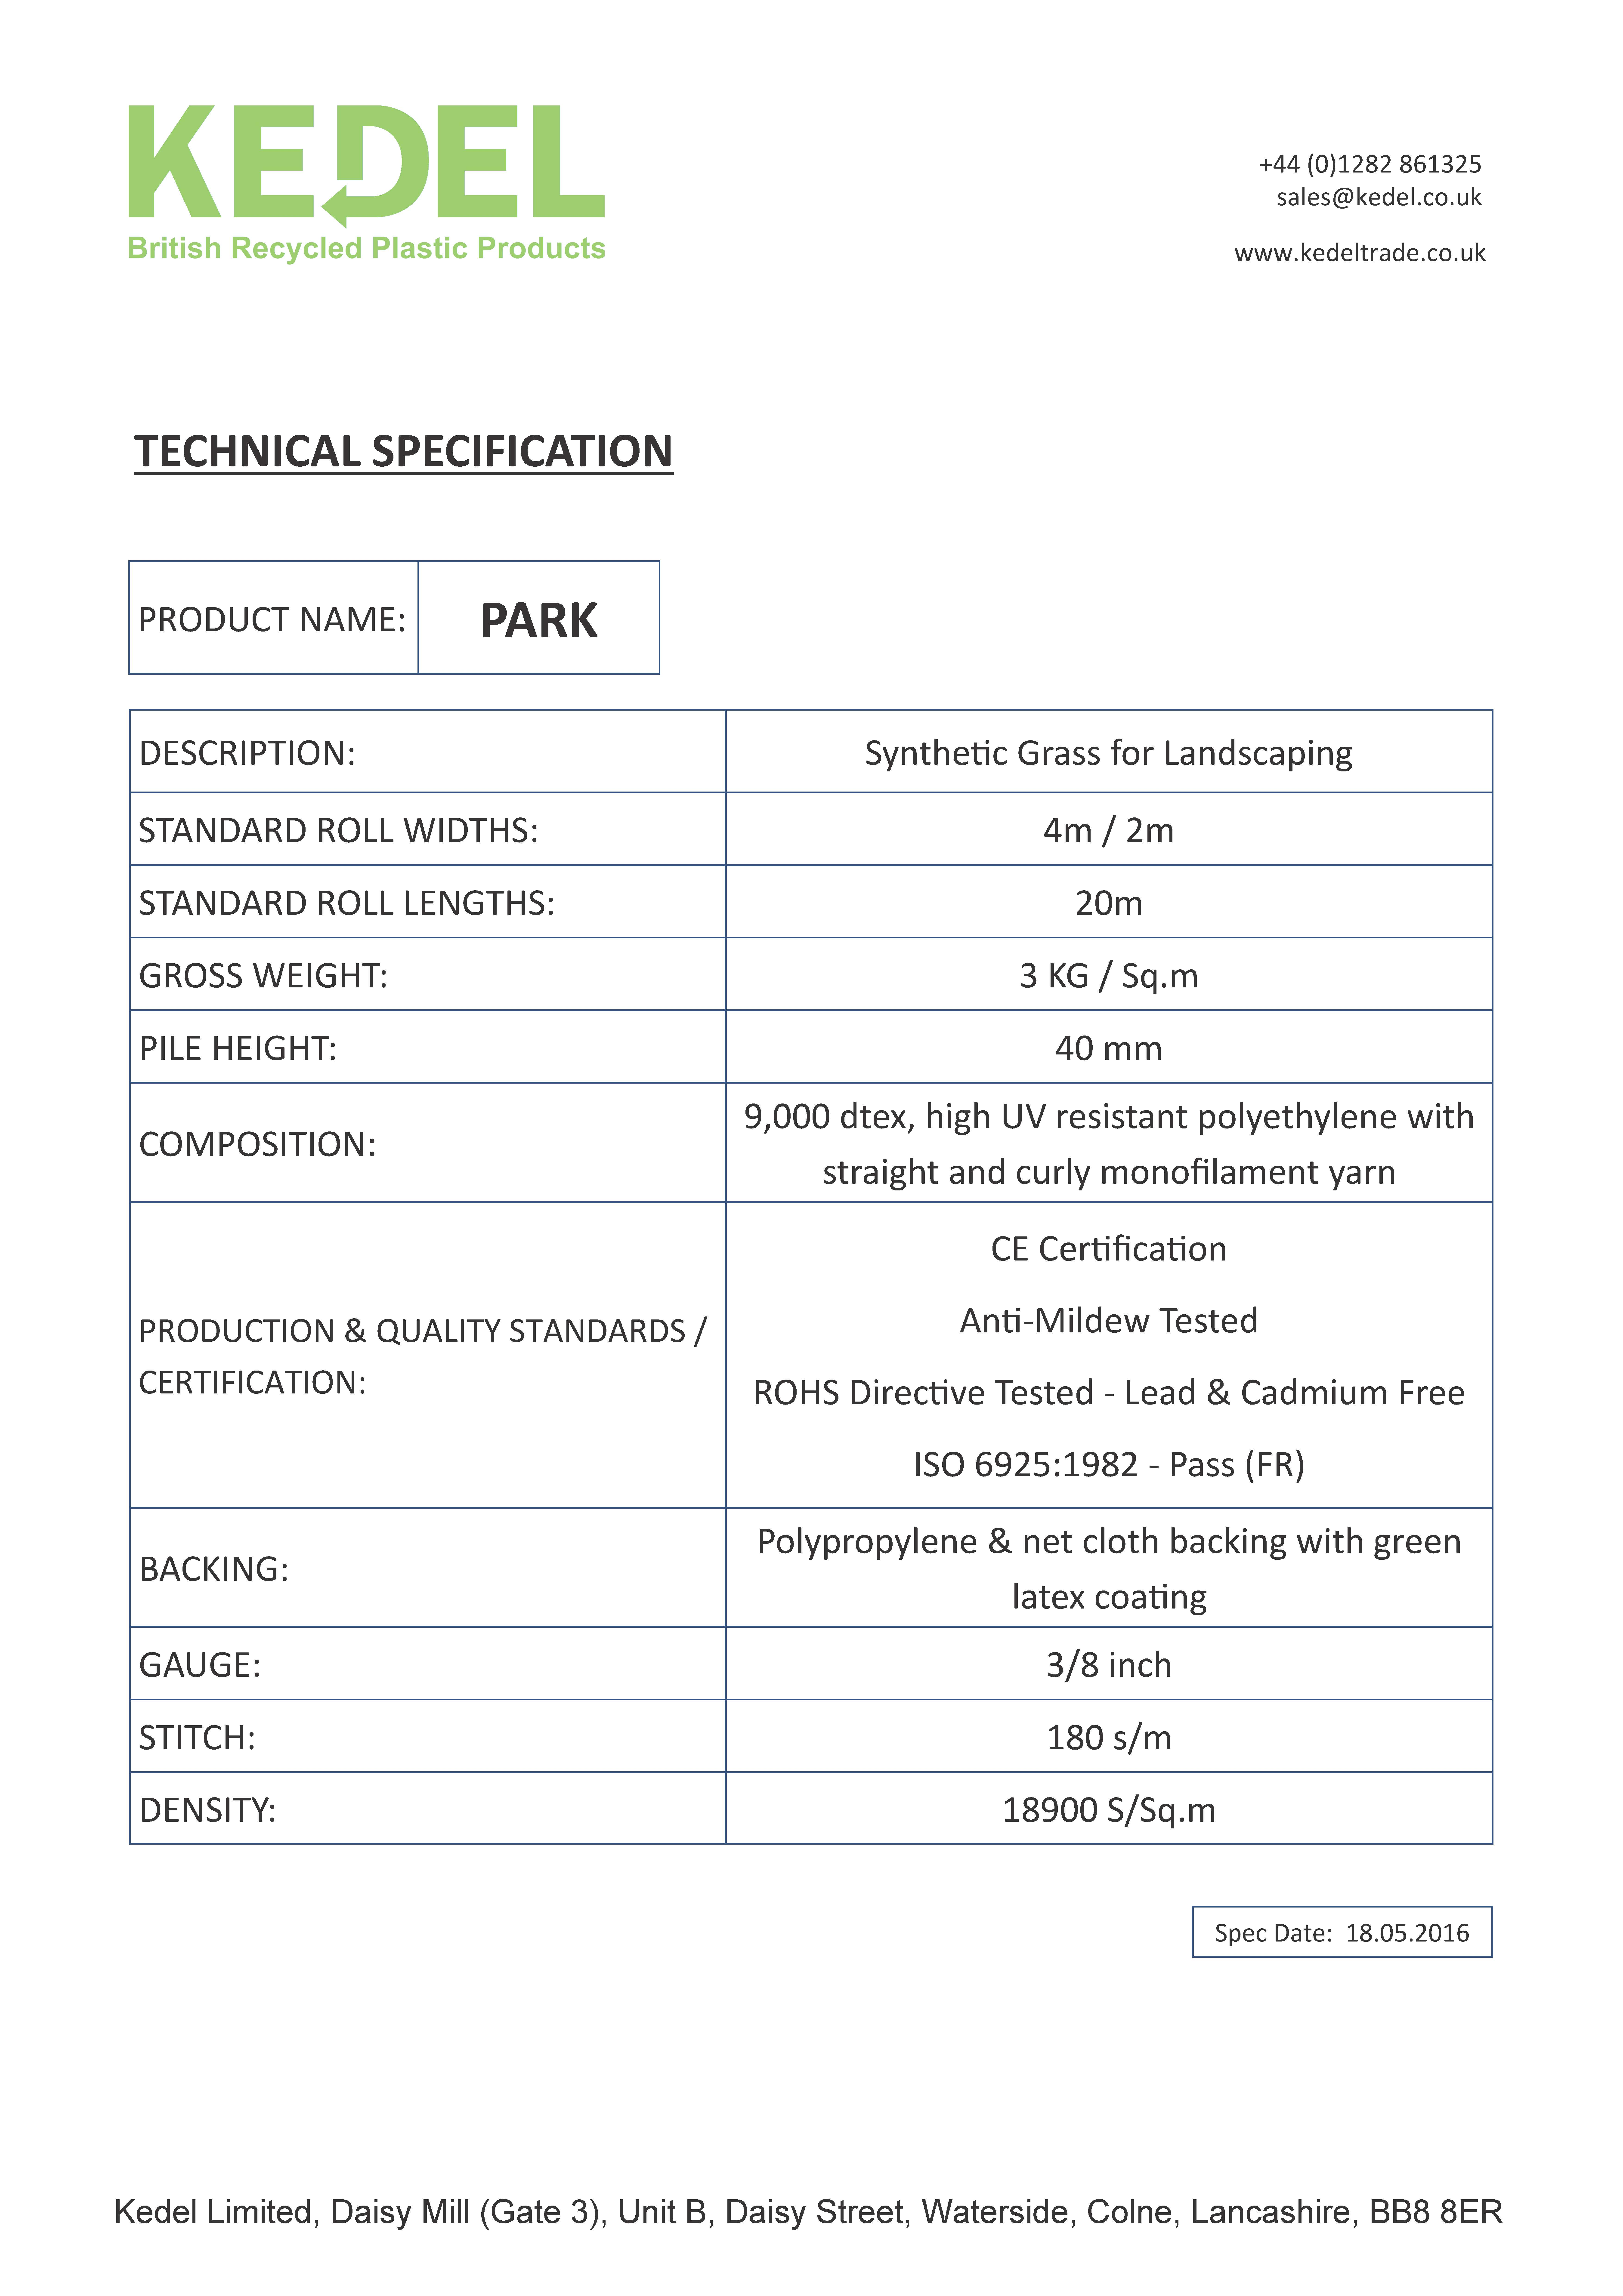 Kedel Artificial Grass Specification